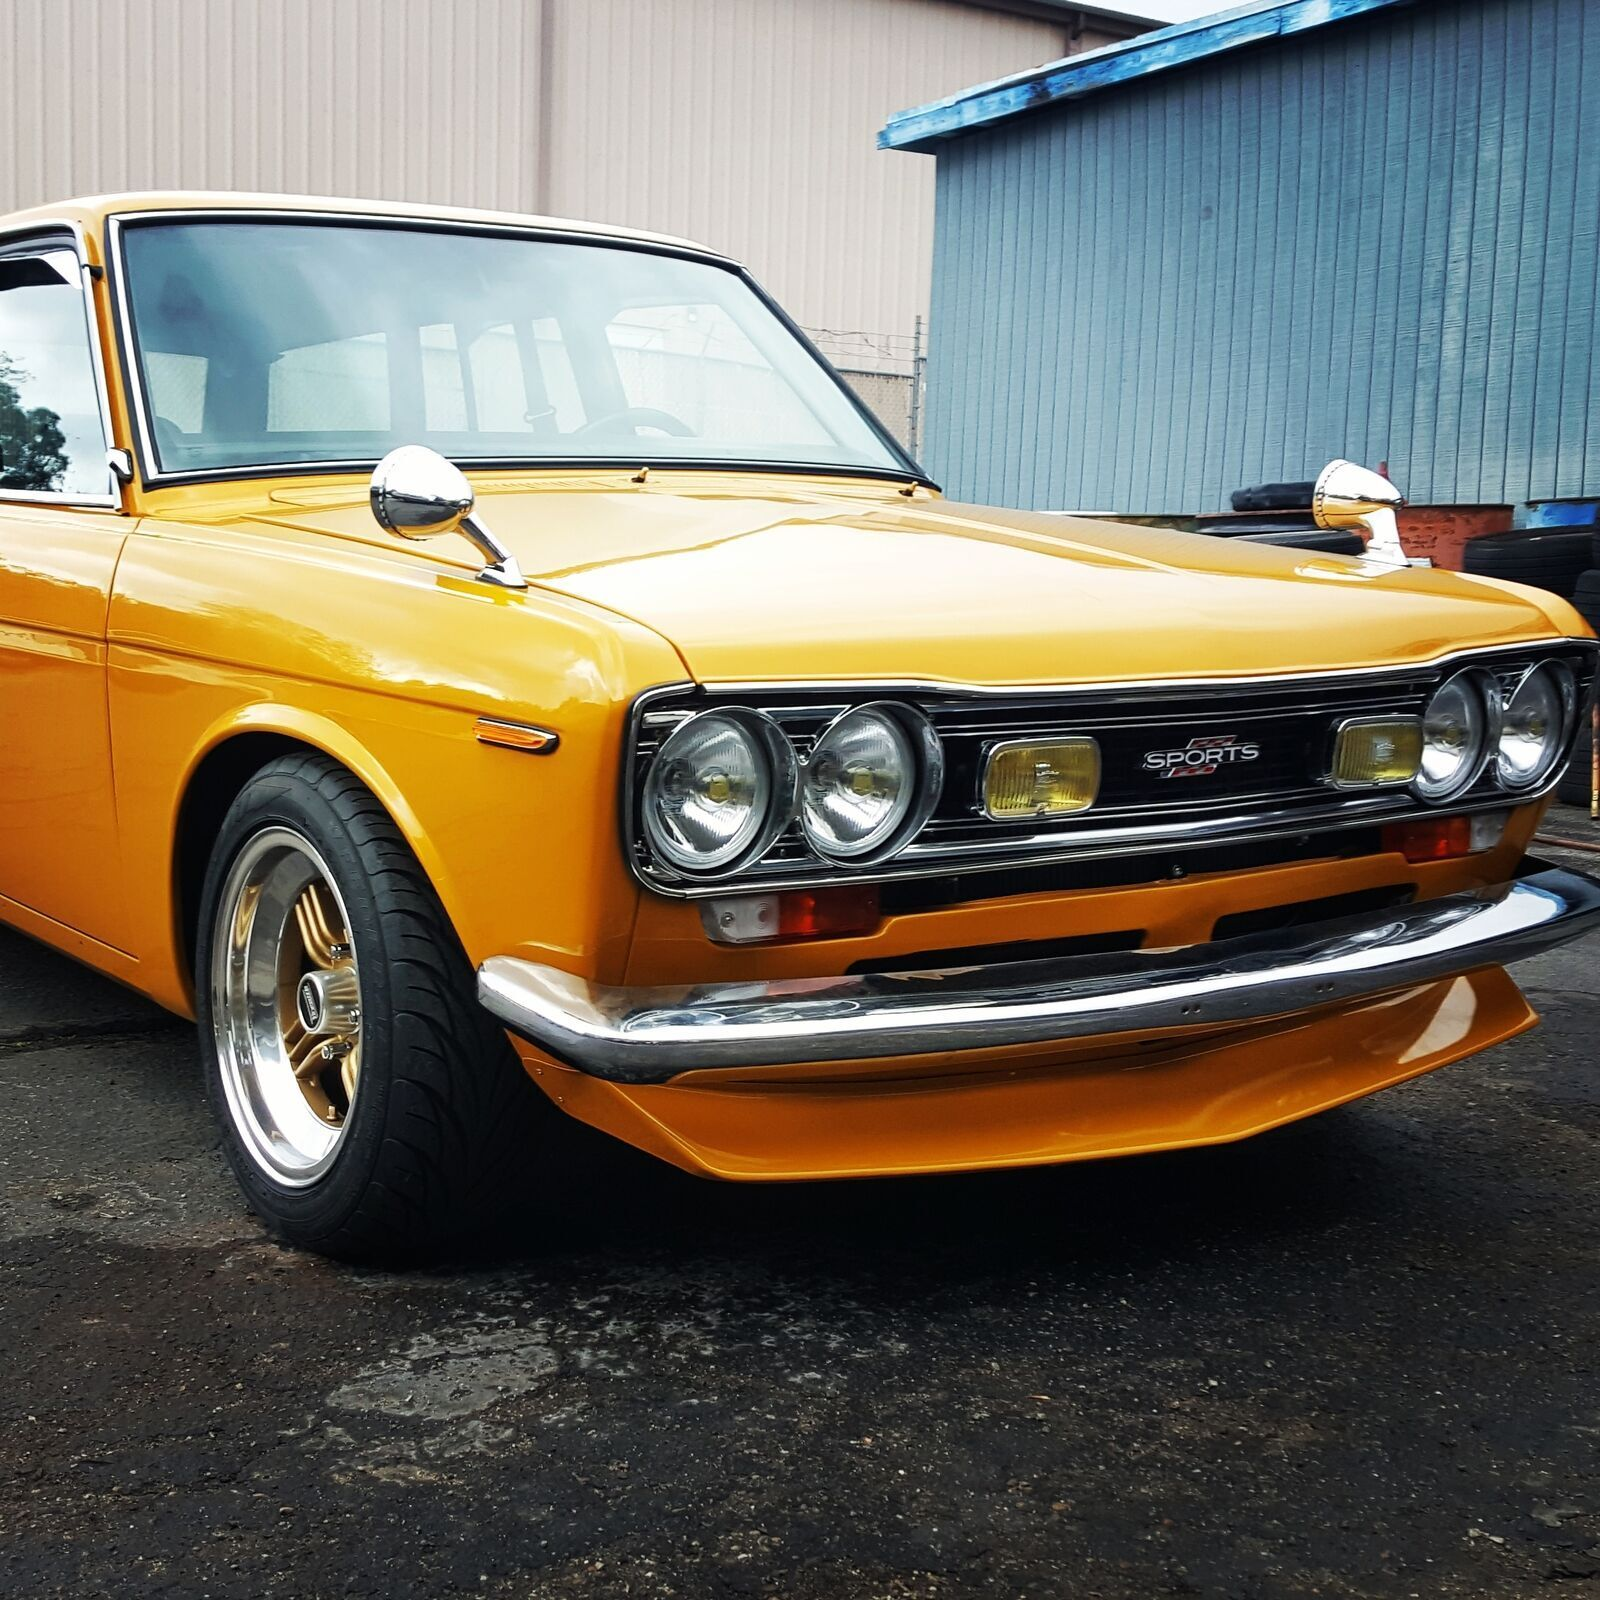 Jdm Fit For Datsun 510 Front Lip Spoiler Made From Sheet Metal For